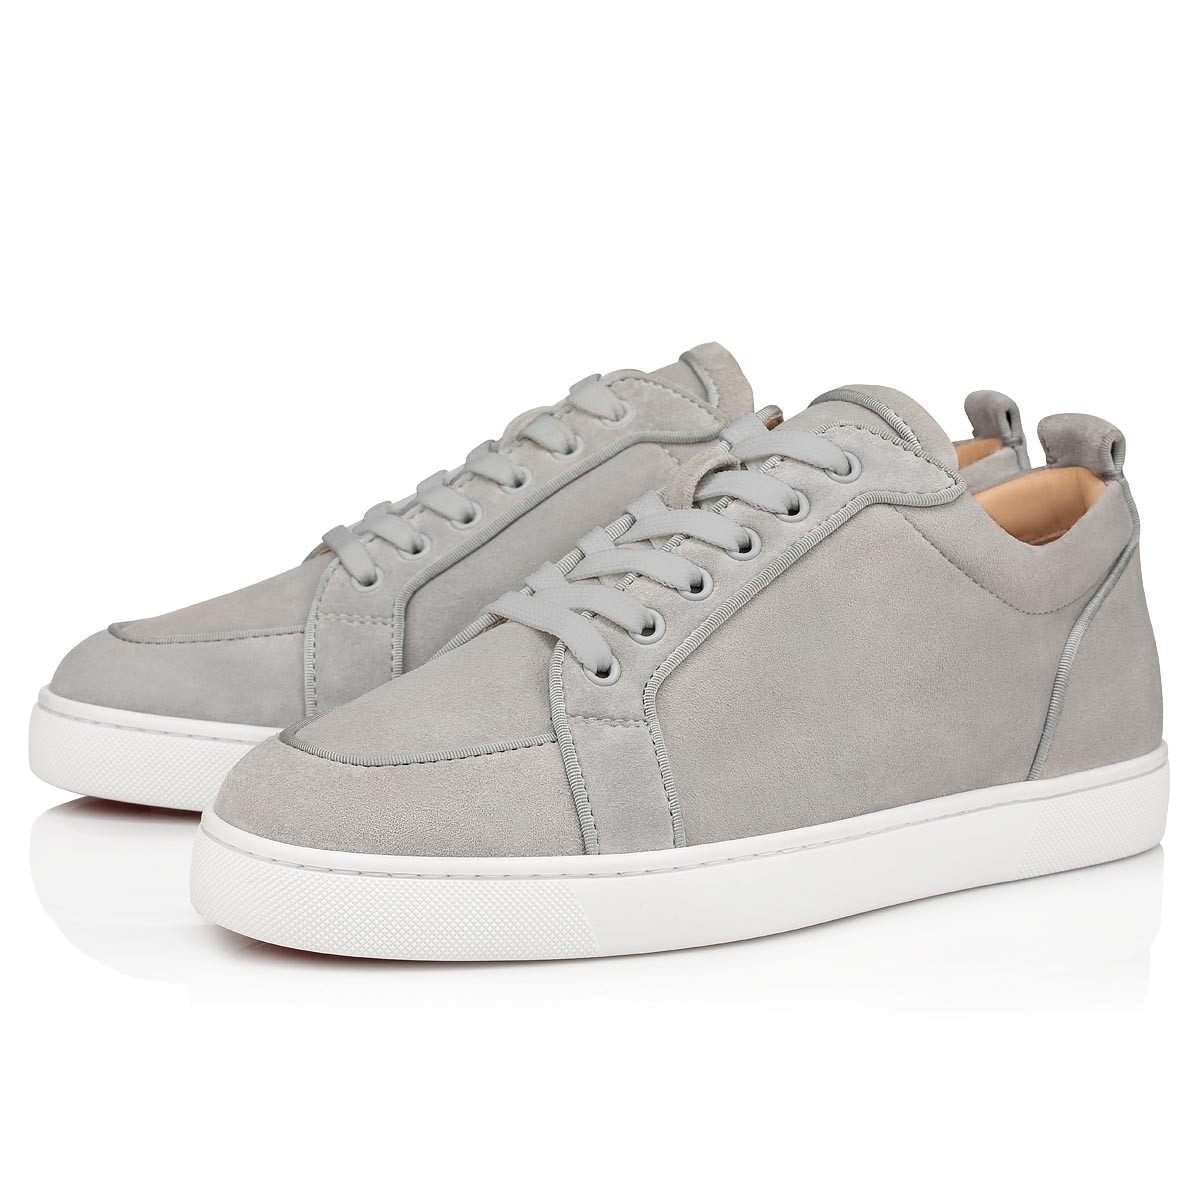 RANTULOW ORLATO GREY VEAU VELOURS Men Shoes Christian Louboutin